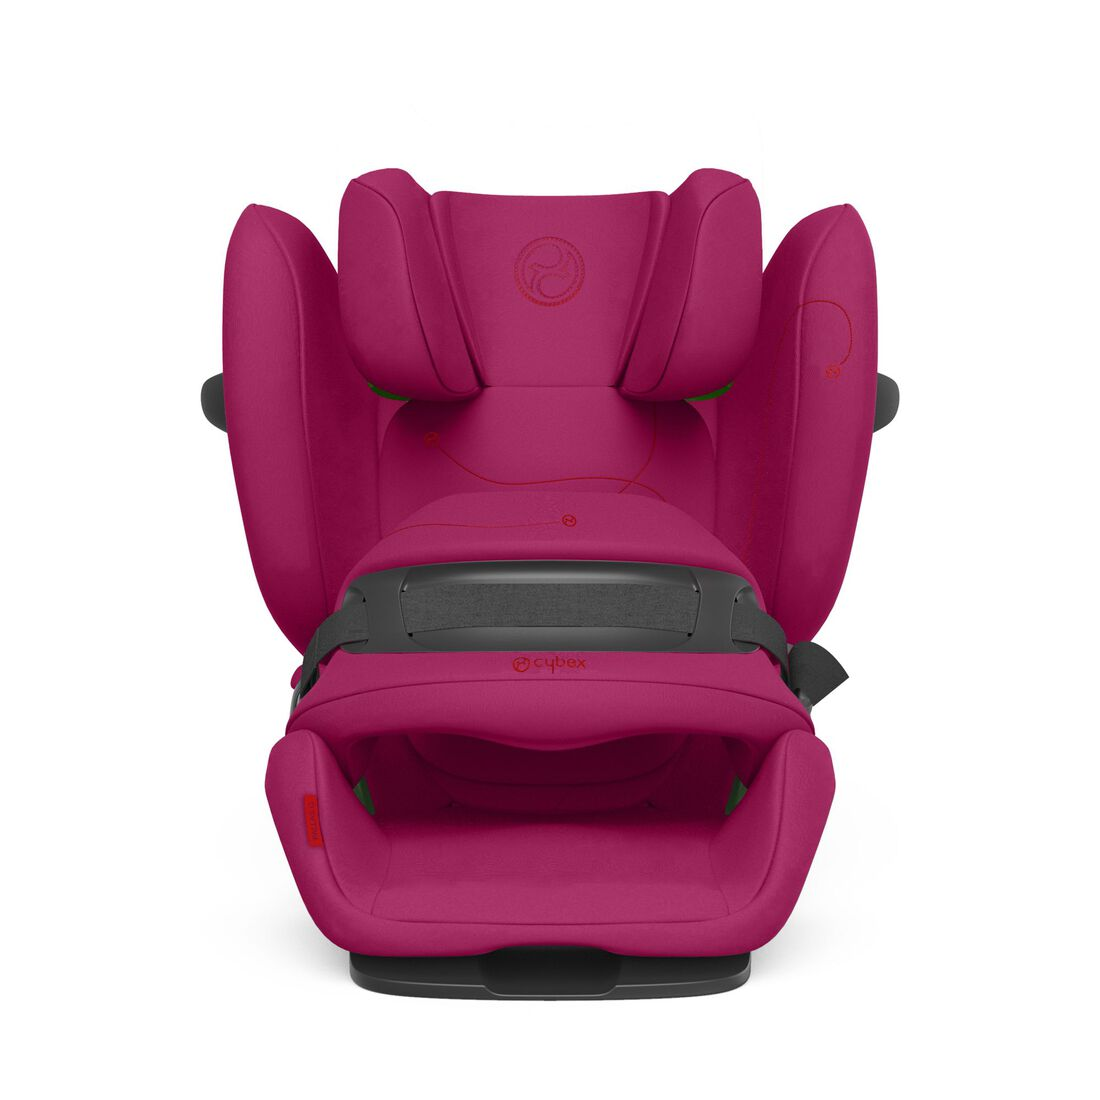 CYBEX Pallas G i-Size - Magnolia Pink in Magnolia Pink large image number 2